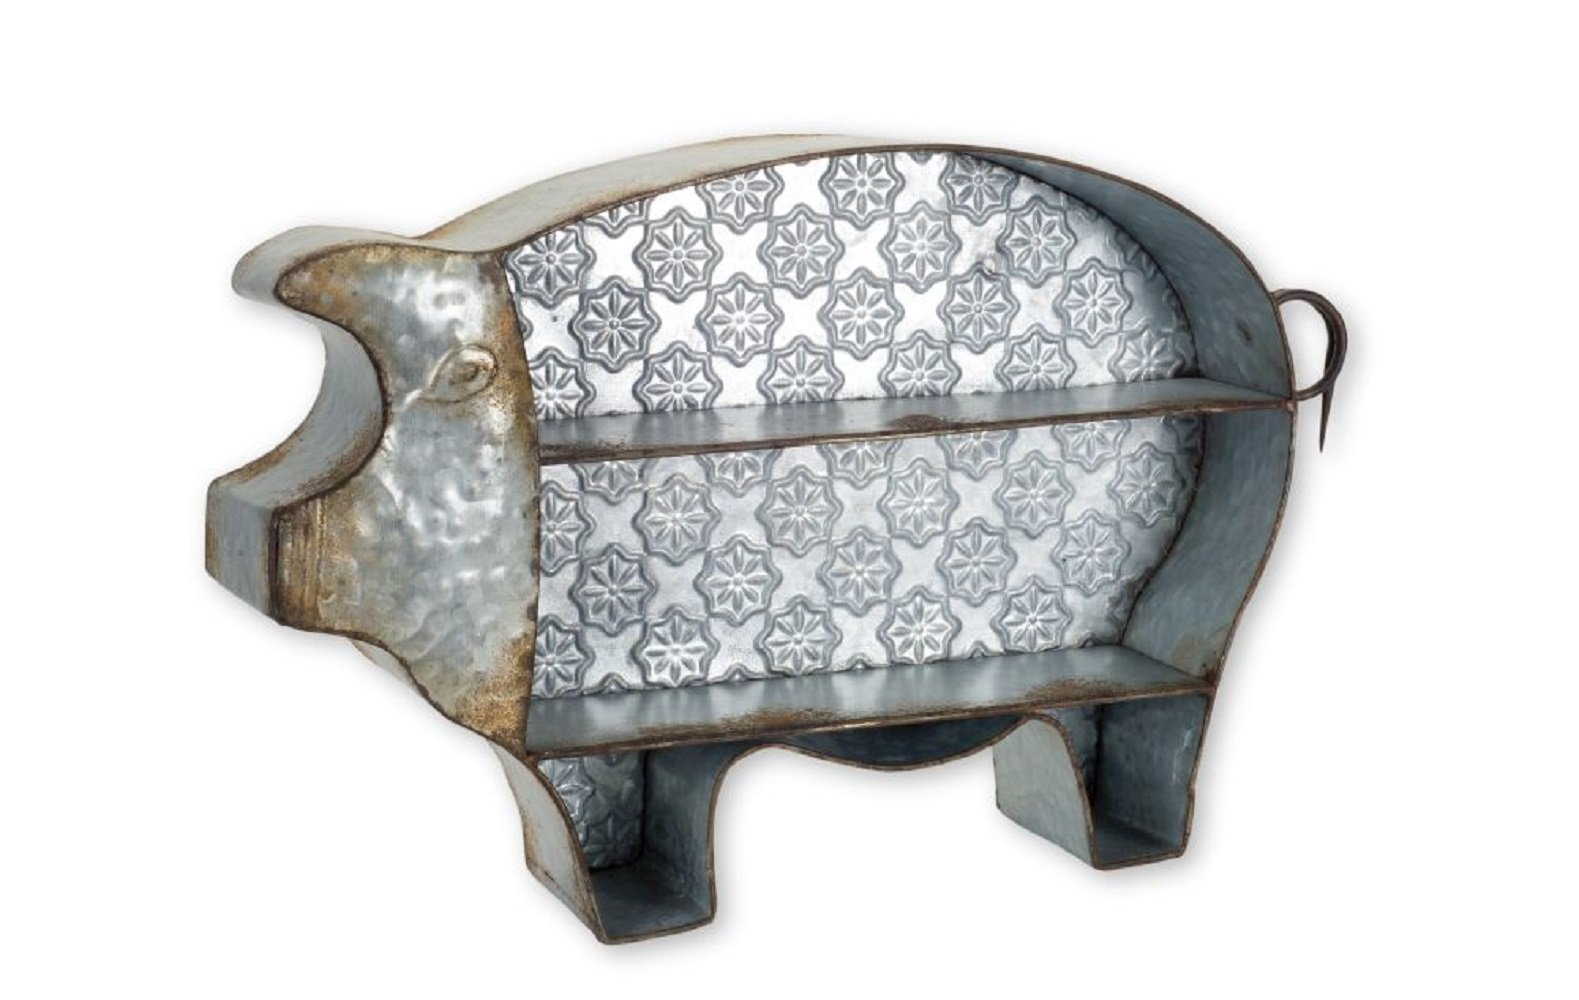 Melrose Pig Divided Tray 25 inches x 15.5 inches Metal